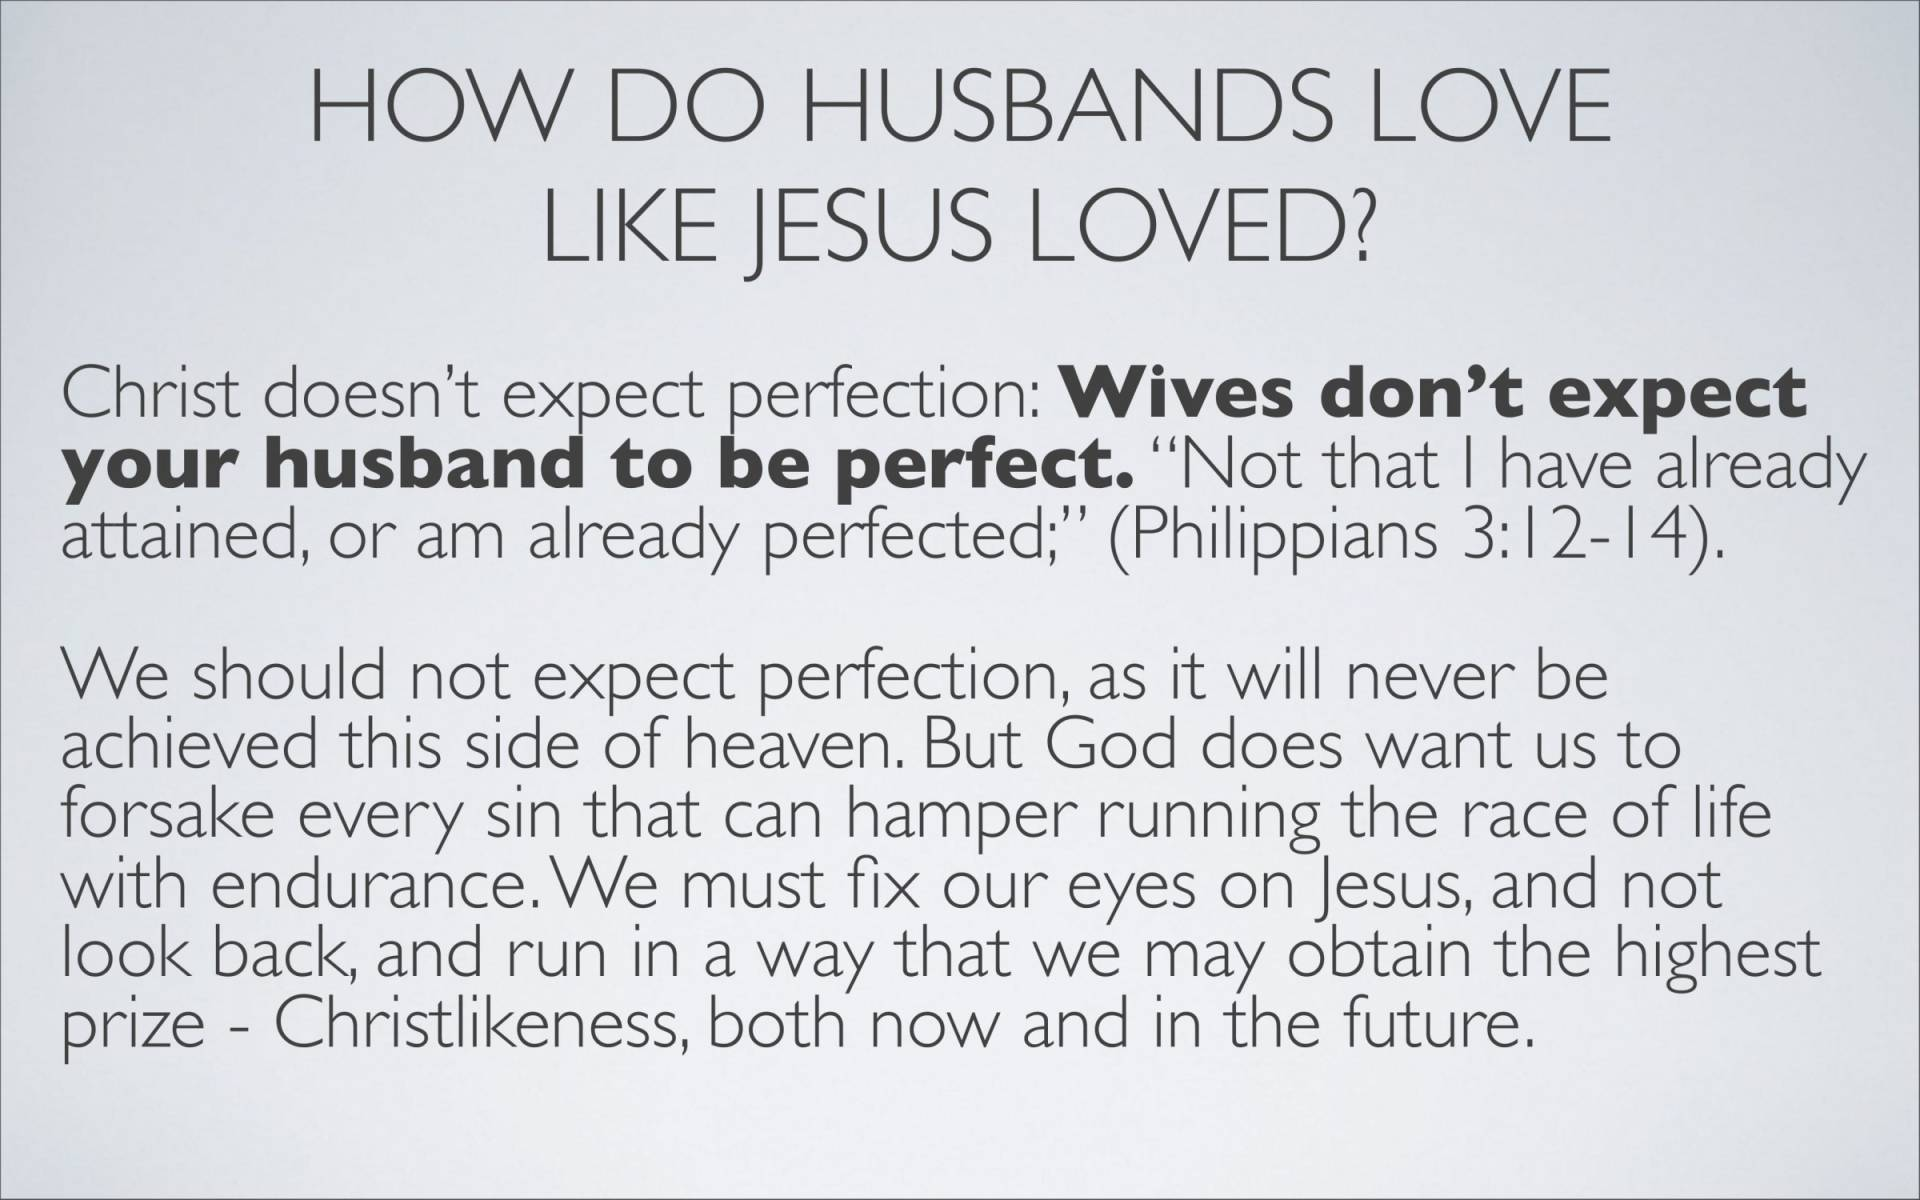 BC&D-37 - Lesson 15-1 - The Marriage Relationship - Husbands-29